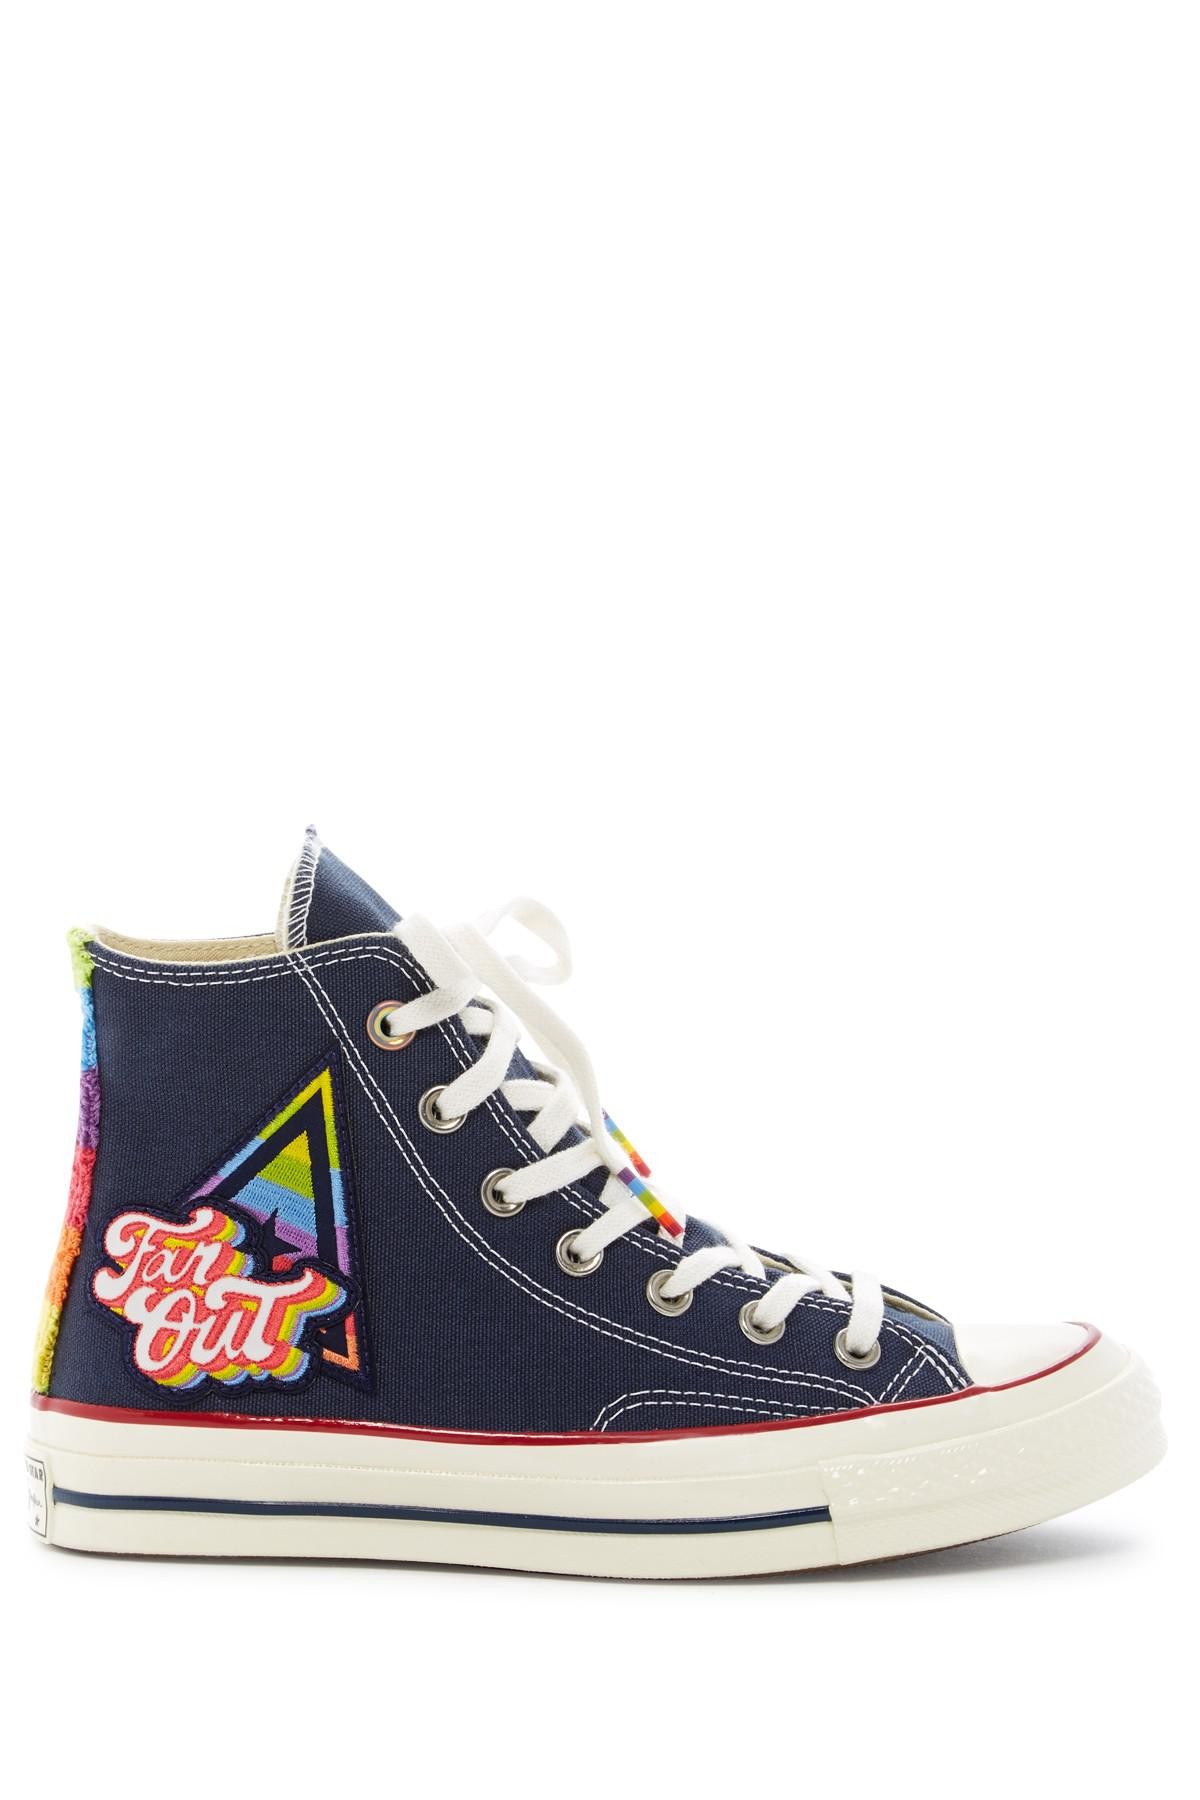 97f18b1c5fc9 Lyst - Converse Chuck Taylor All Star 70s First Pride Parade Hi Top ...